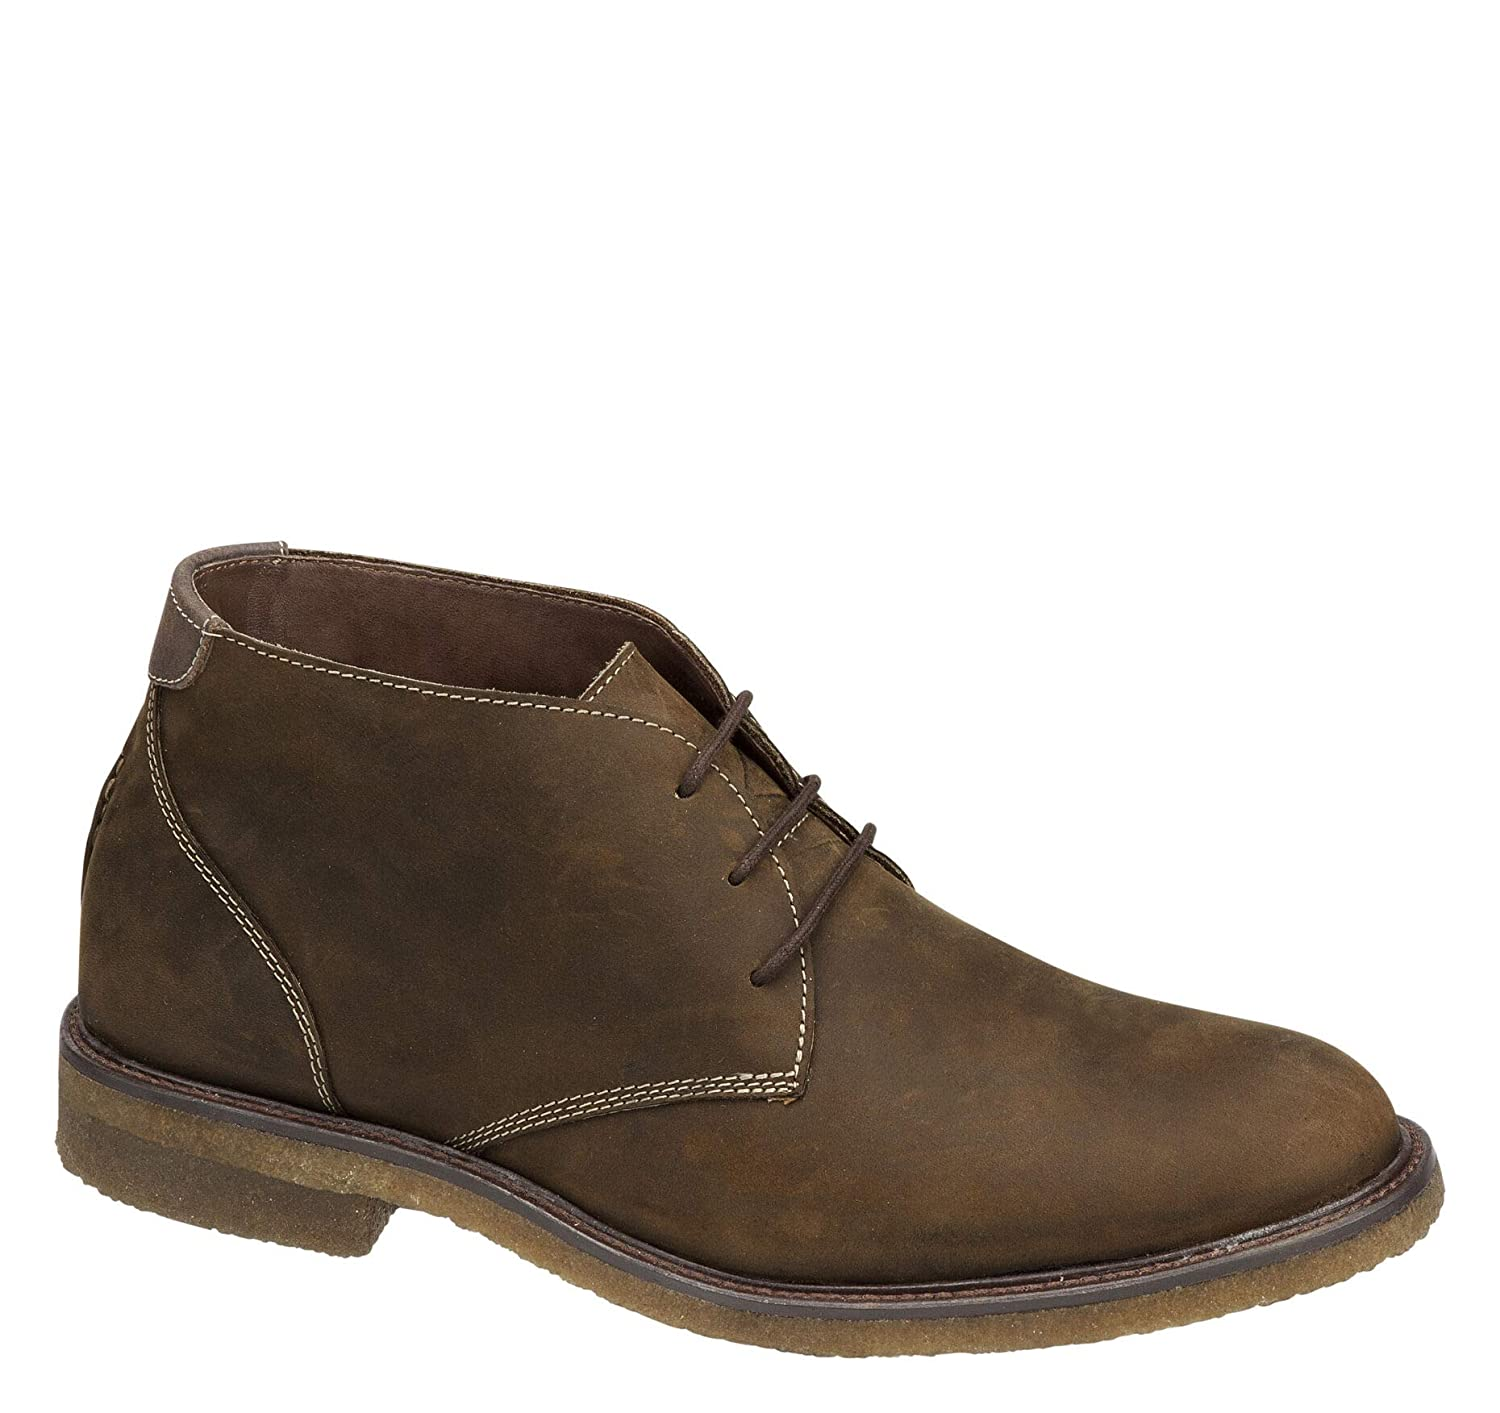 610c838edae Johnston & Murphy Men's Copeland Chukka